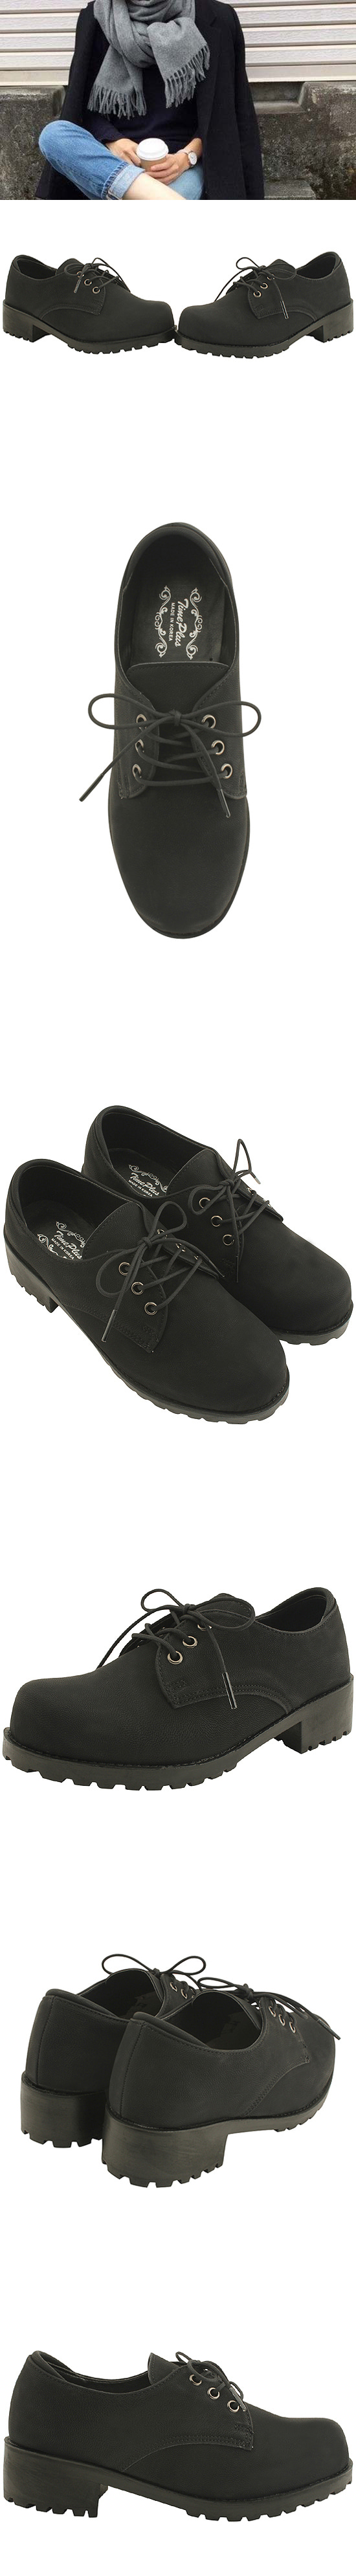 Oxford lace-up full heel loafers 4cm